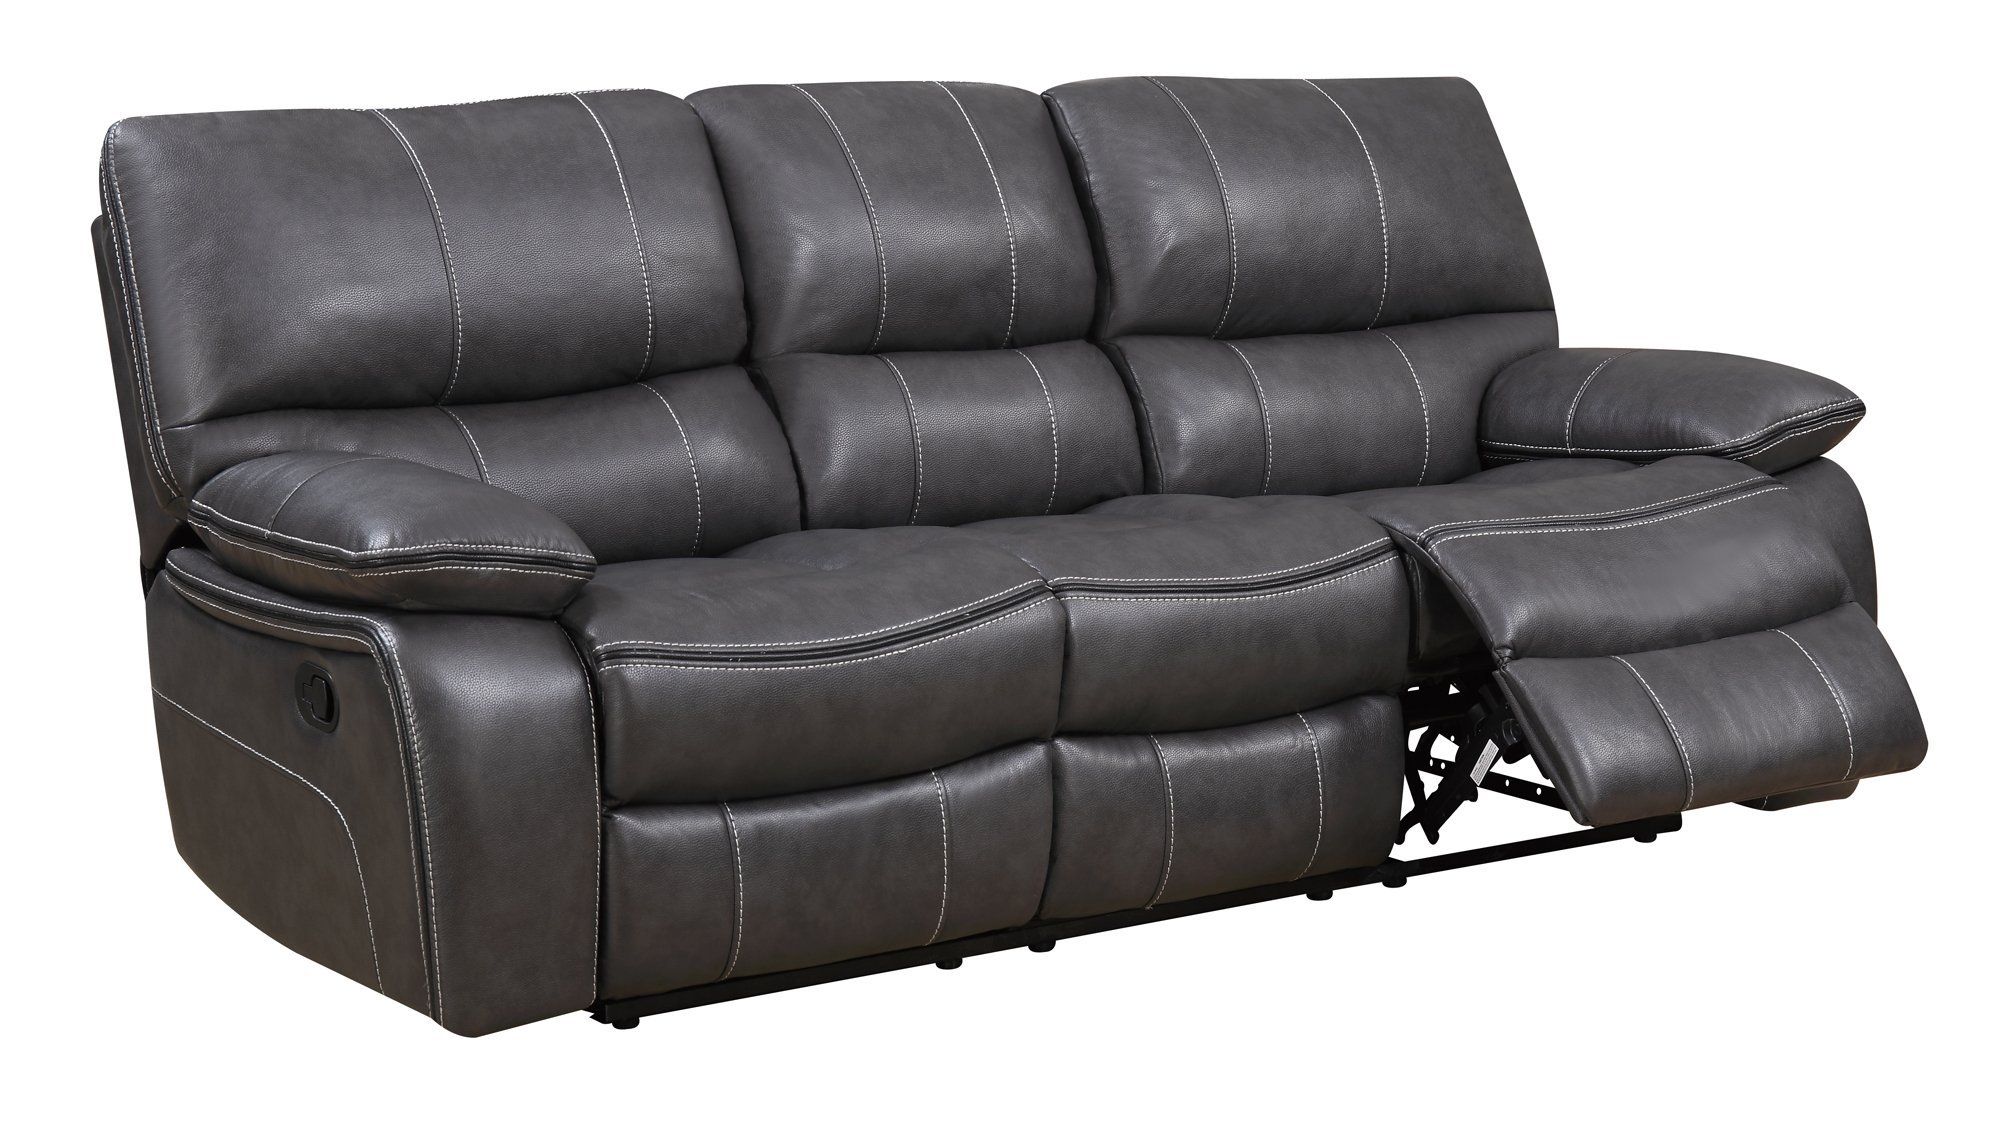 U0040 Grey Black Leather Air Reclining Sofa By Global Furniture